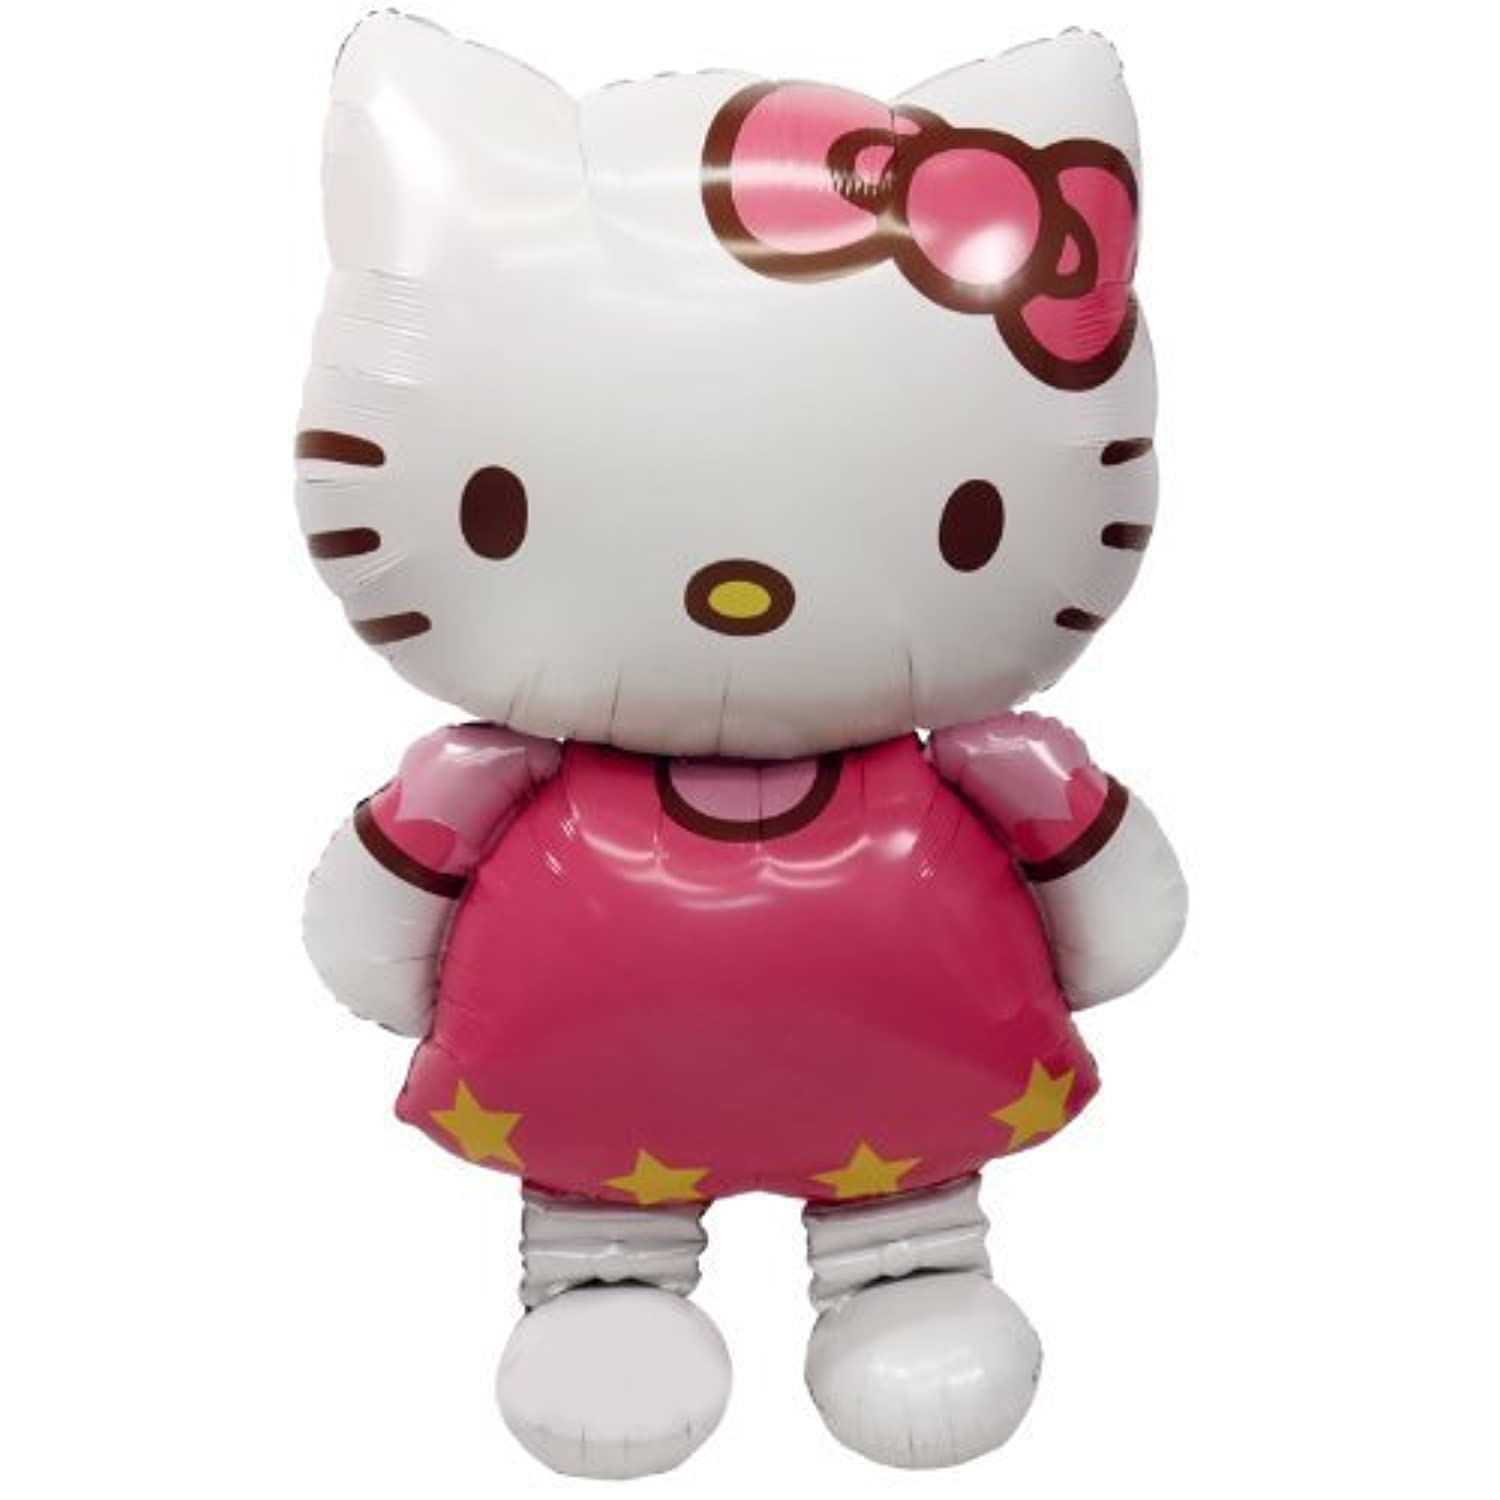 Lets Party By Mayflower Distributing Hello Kitty Airwalker Foil Balloon by BY- Mayflower Distributing